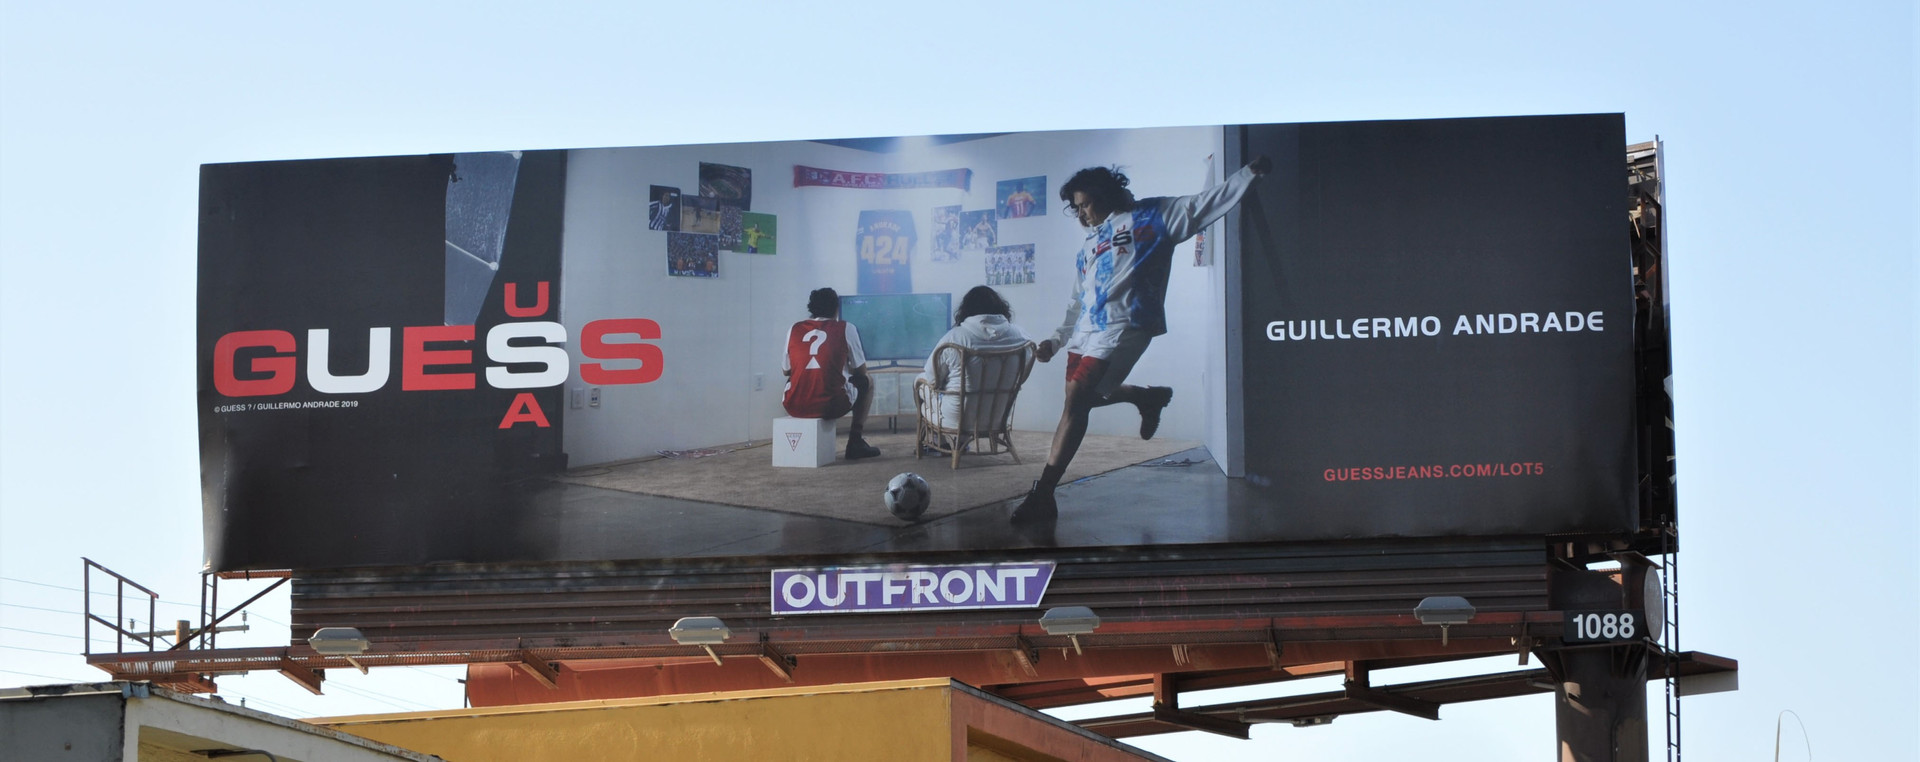 Guess Sport x Guillermo Andrade Billboard